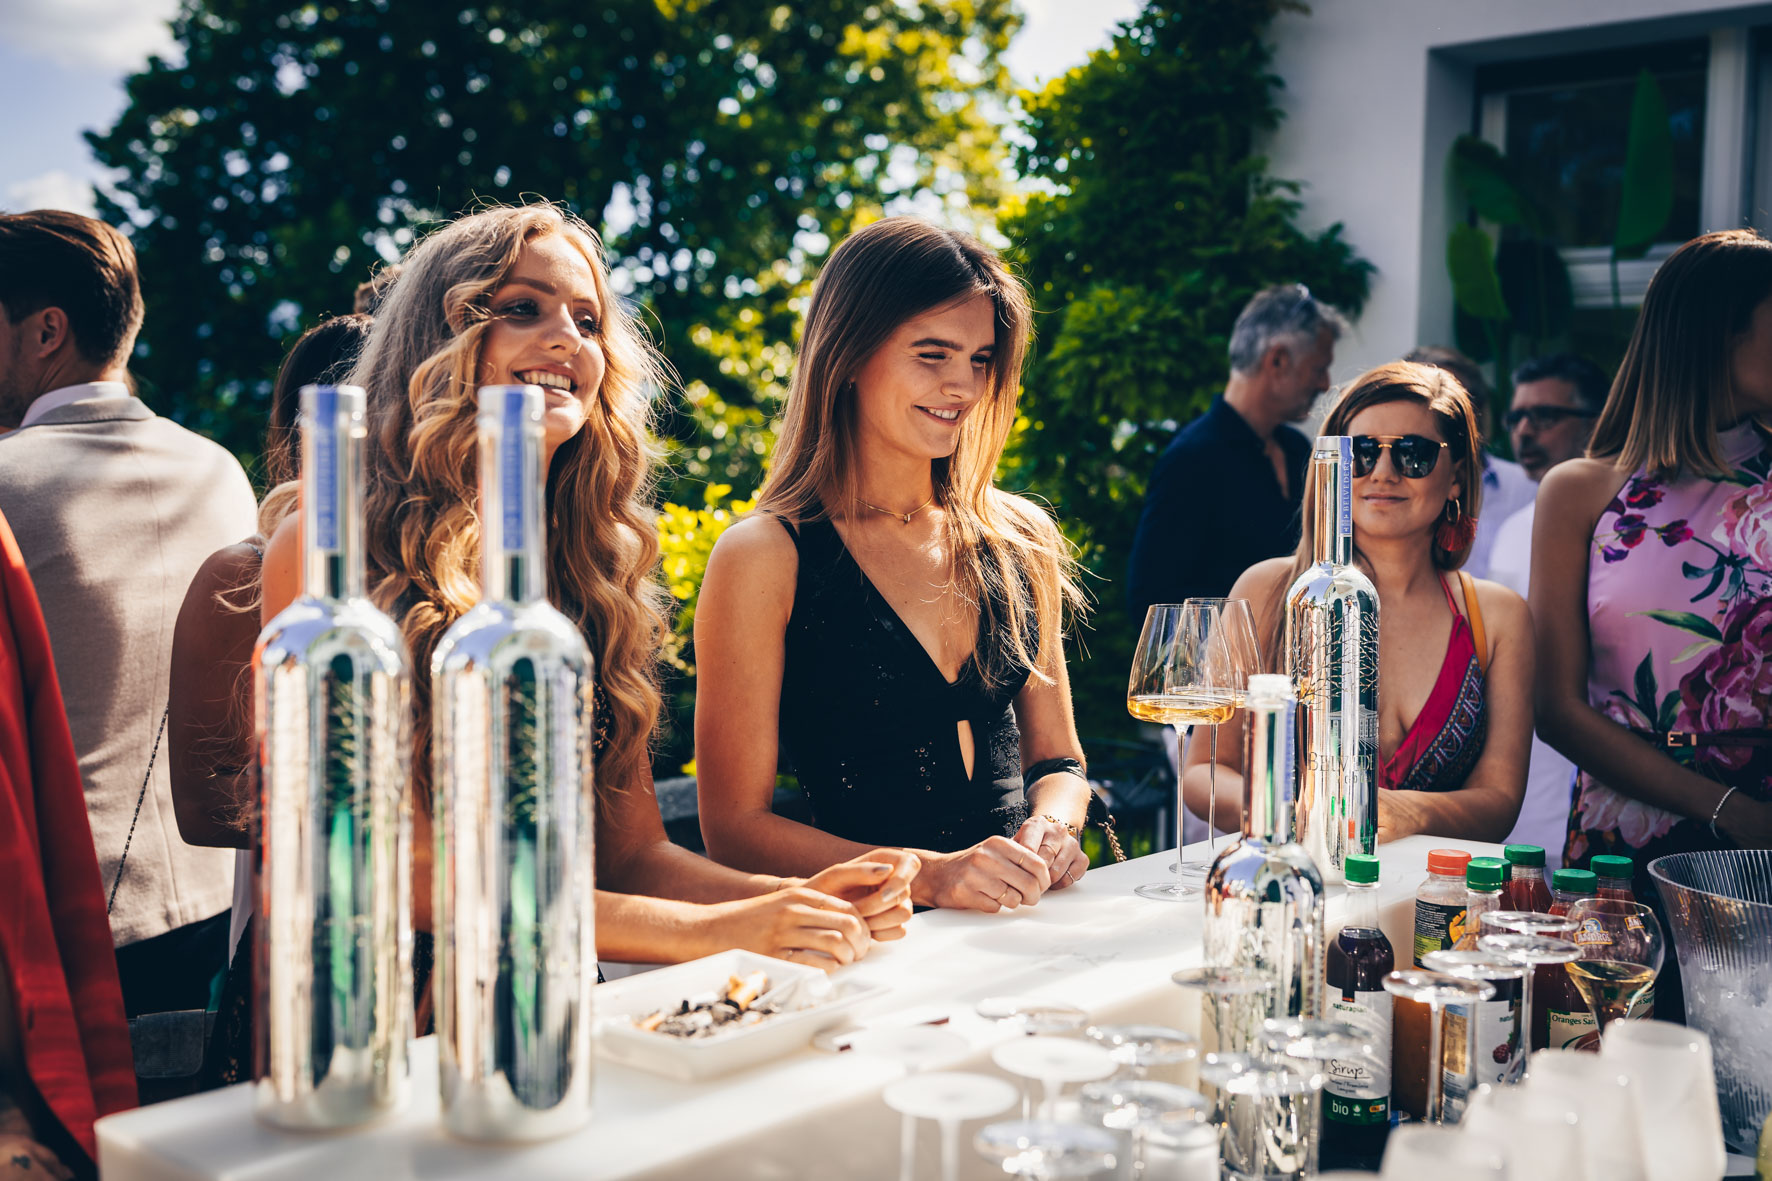 Konrad-lifestyle-art-basel-%22belvedere-secret-sunday%22-2019-23.jpg